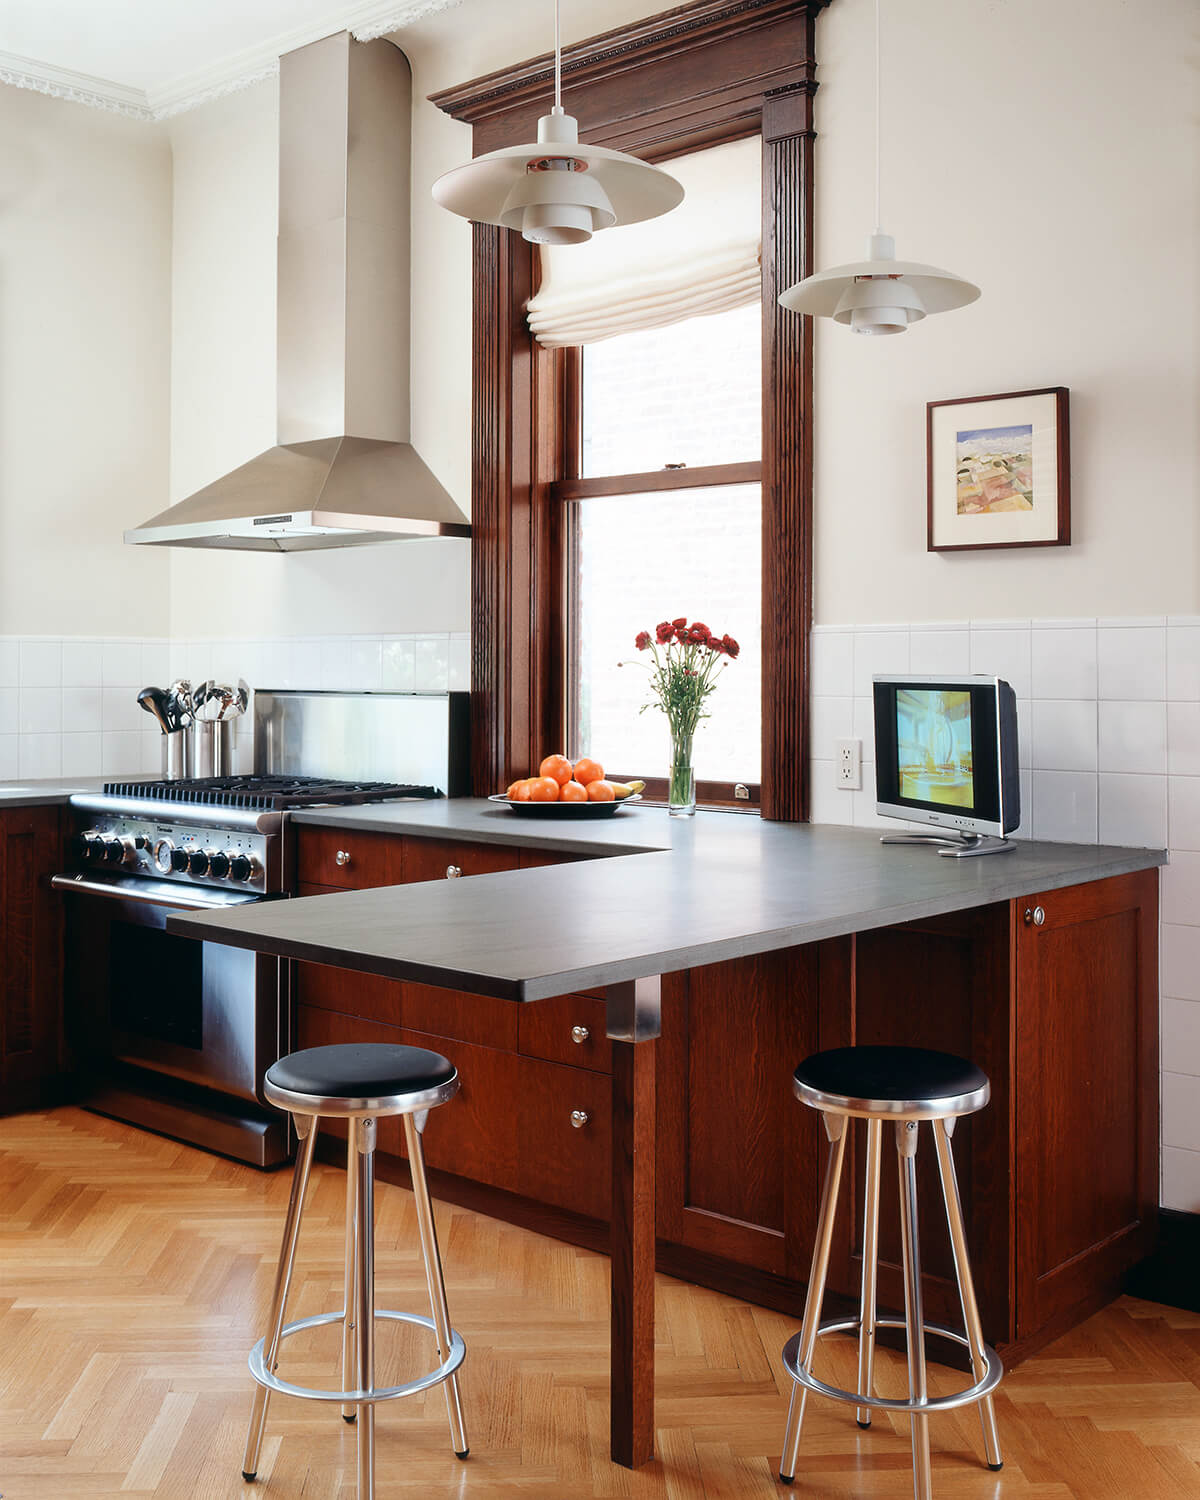 modern kitchen in a grand limestone row house in Brooklyn